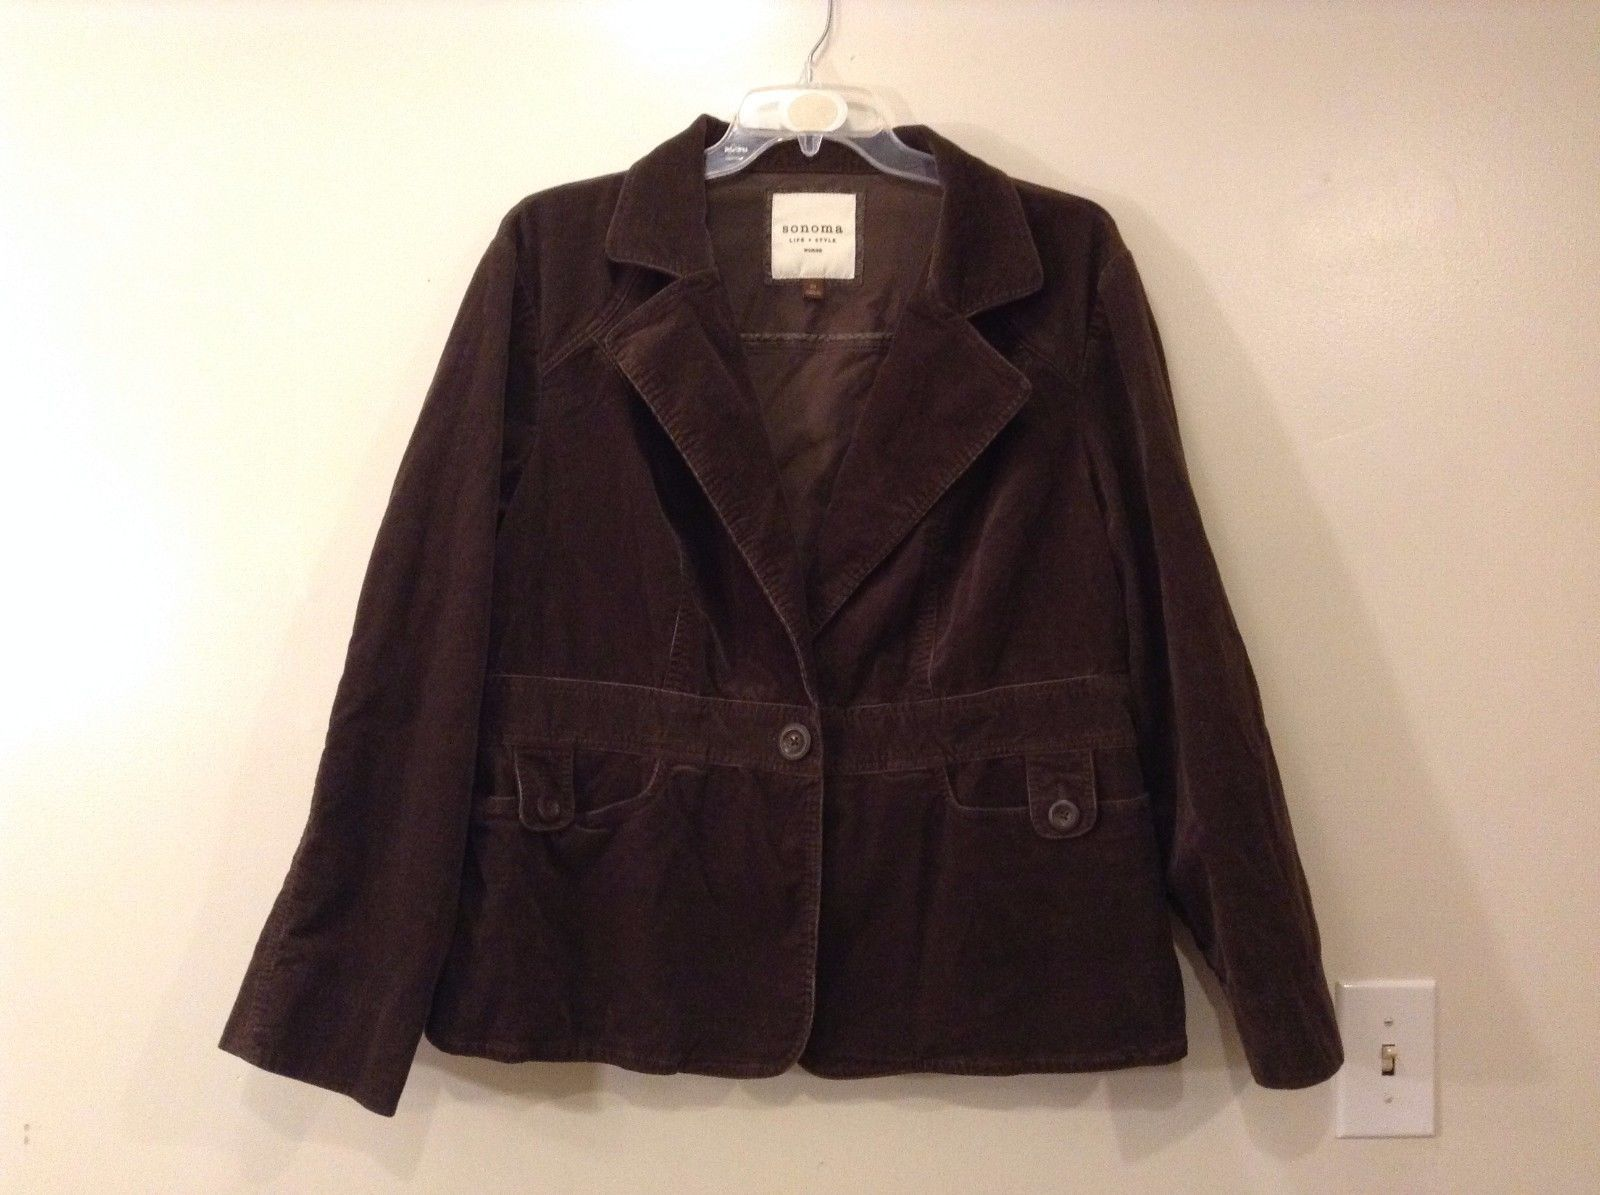 Sonoma Dark Brown Corduroy Jacket One Button Closure Size 2x Pleated Back